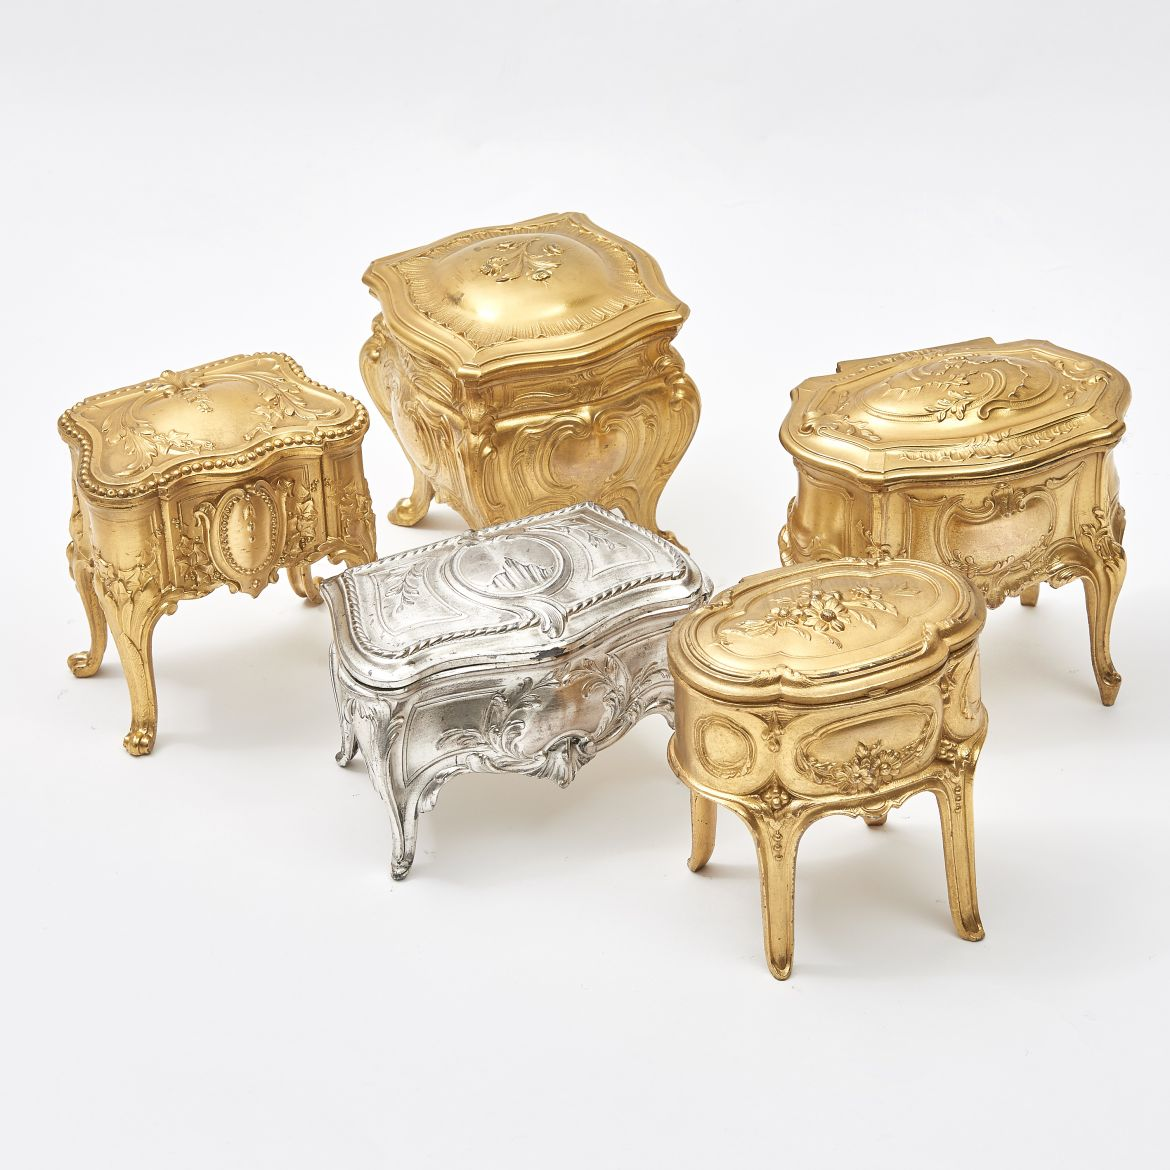 Collection of Miniature Jewellery Boxes